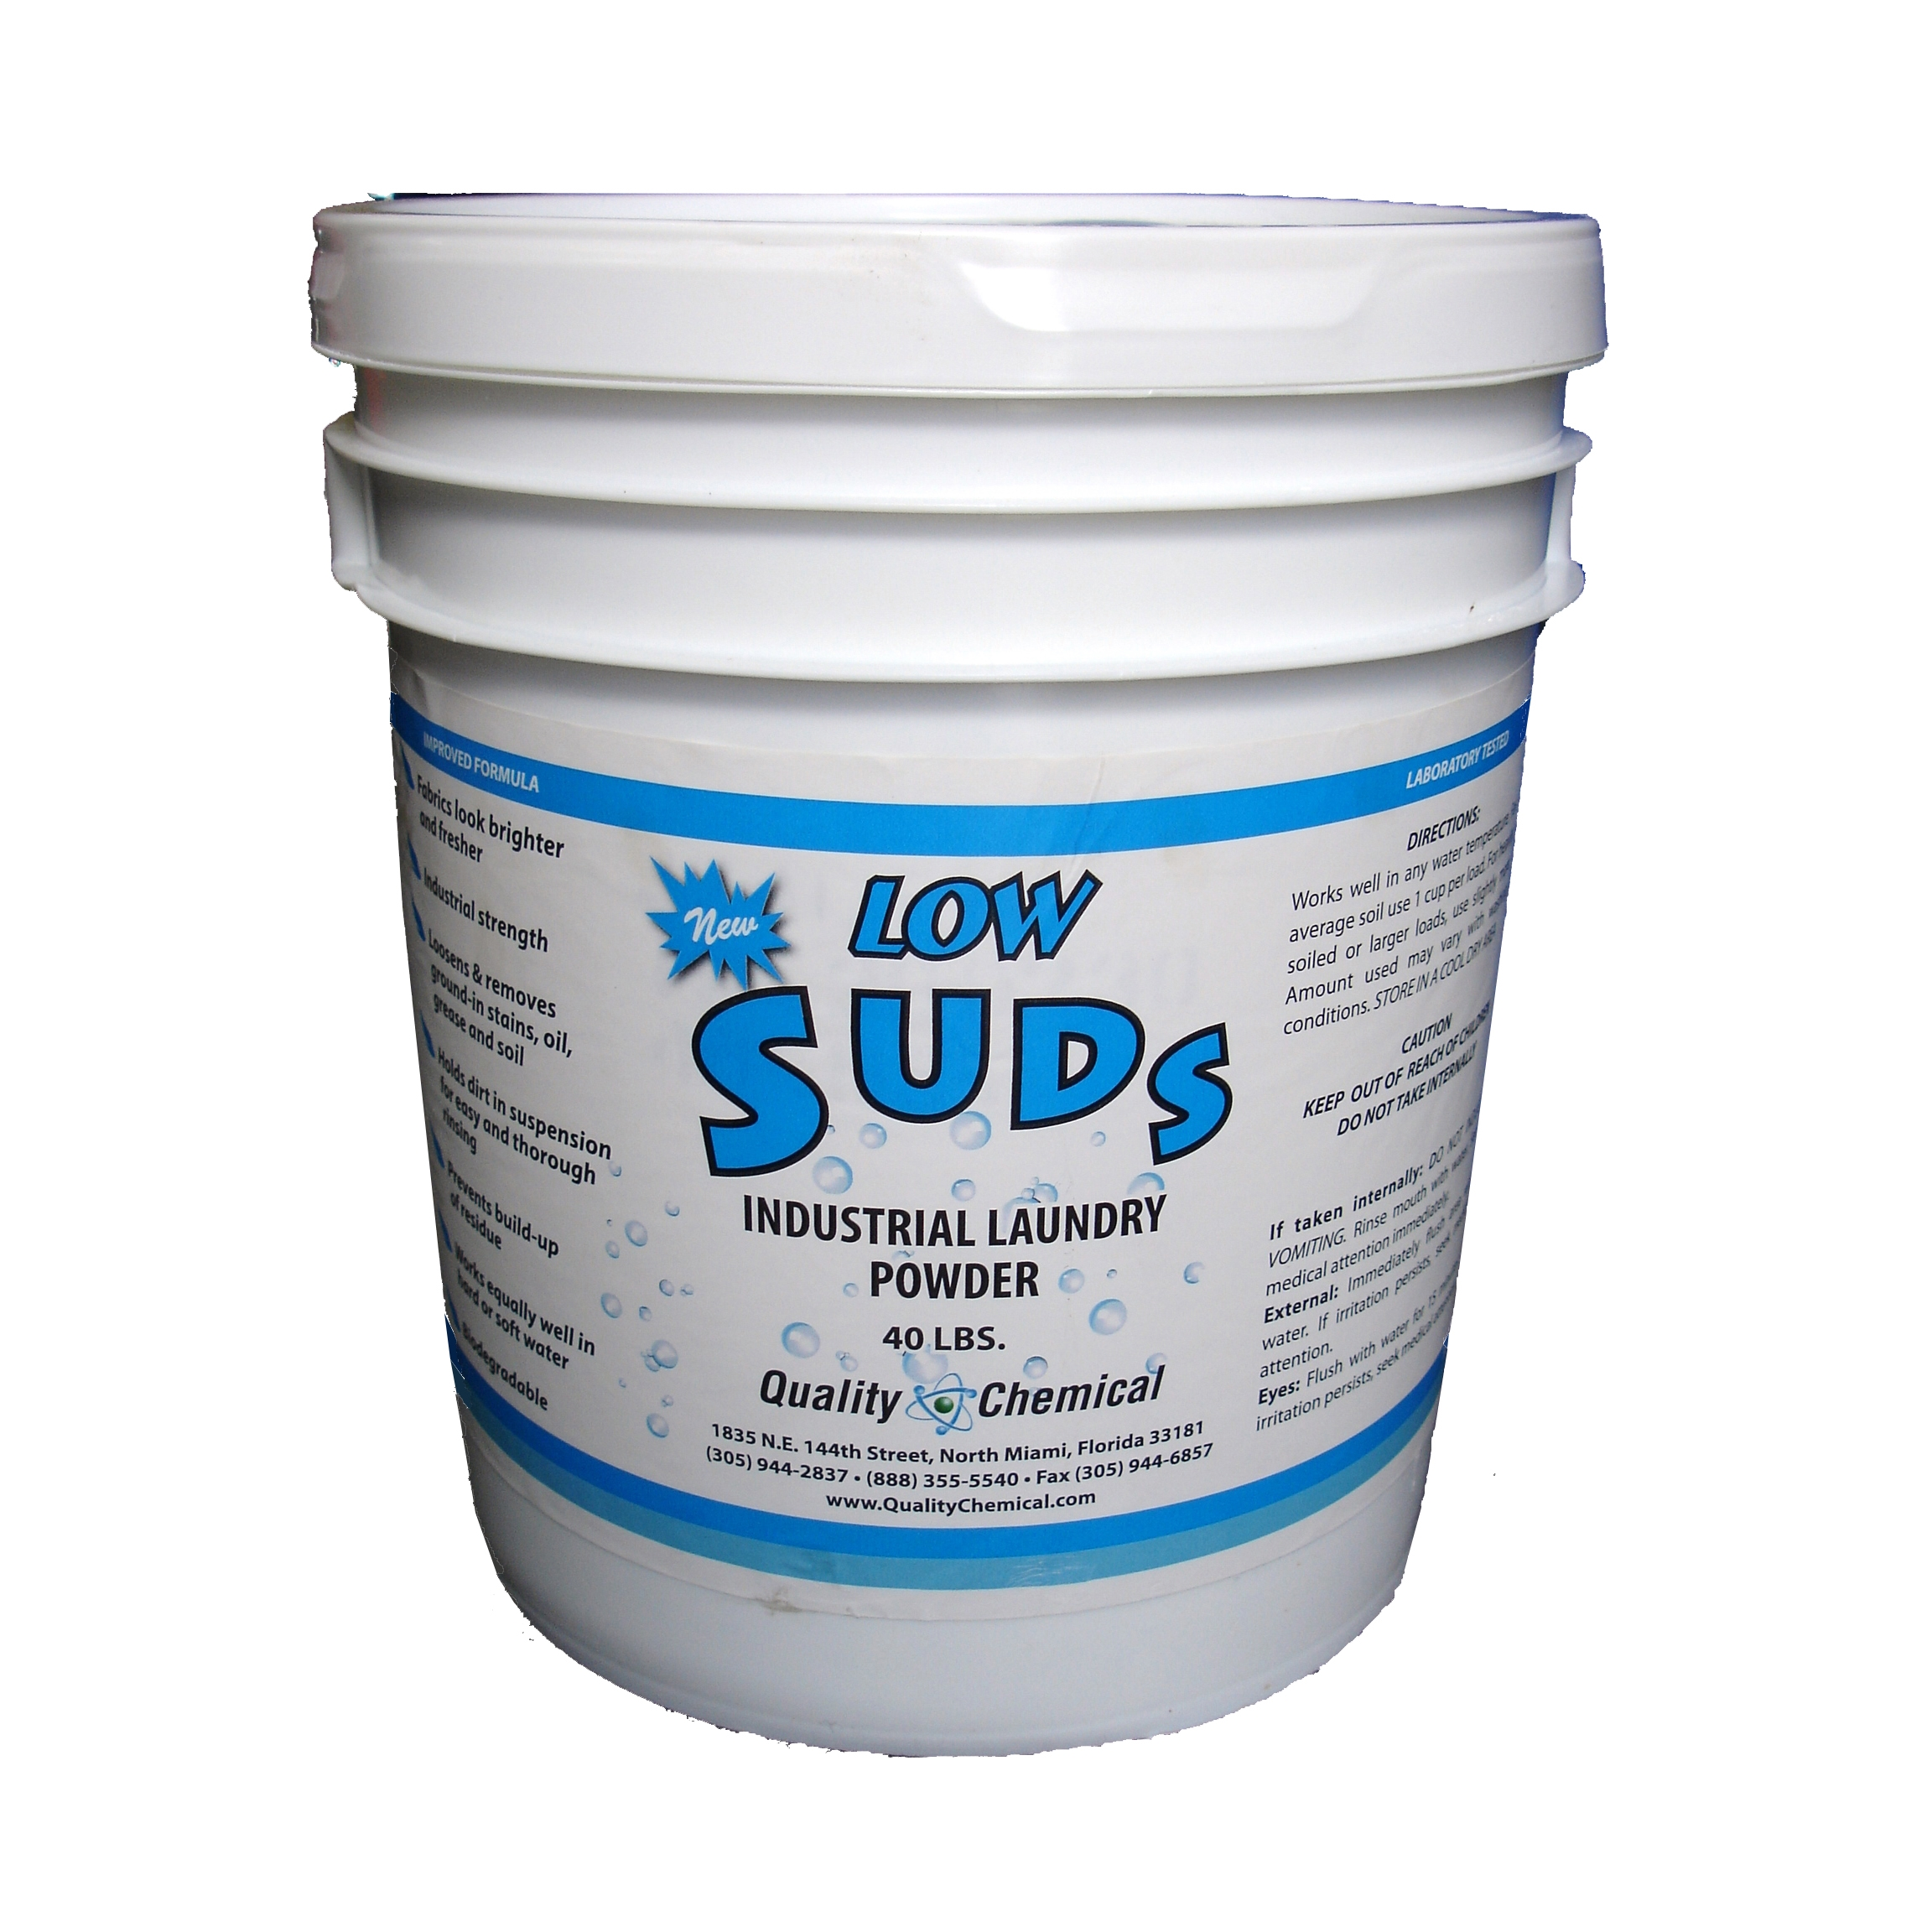 Lo Suds Laundry Detergent 40lbs.